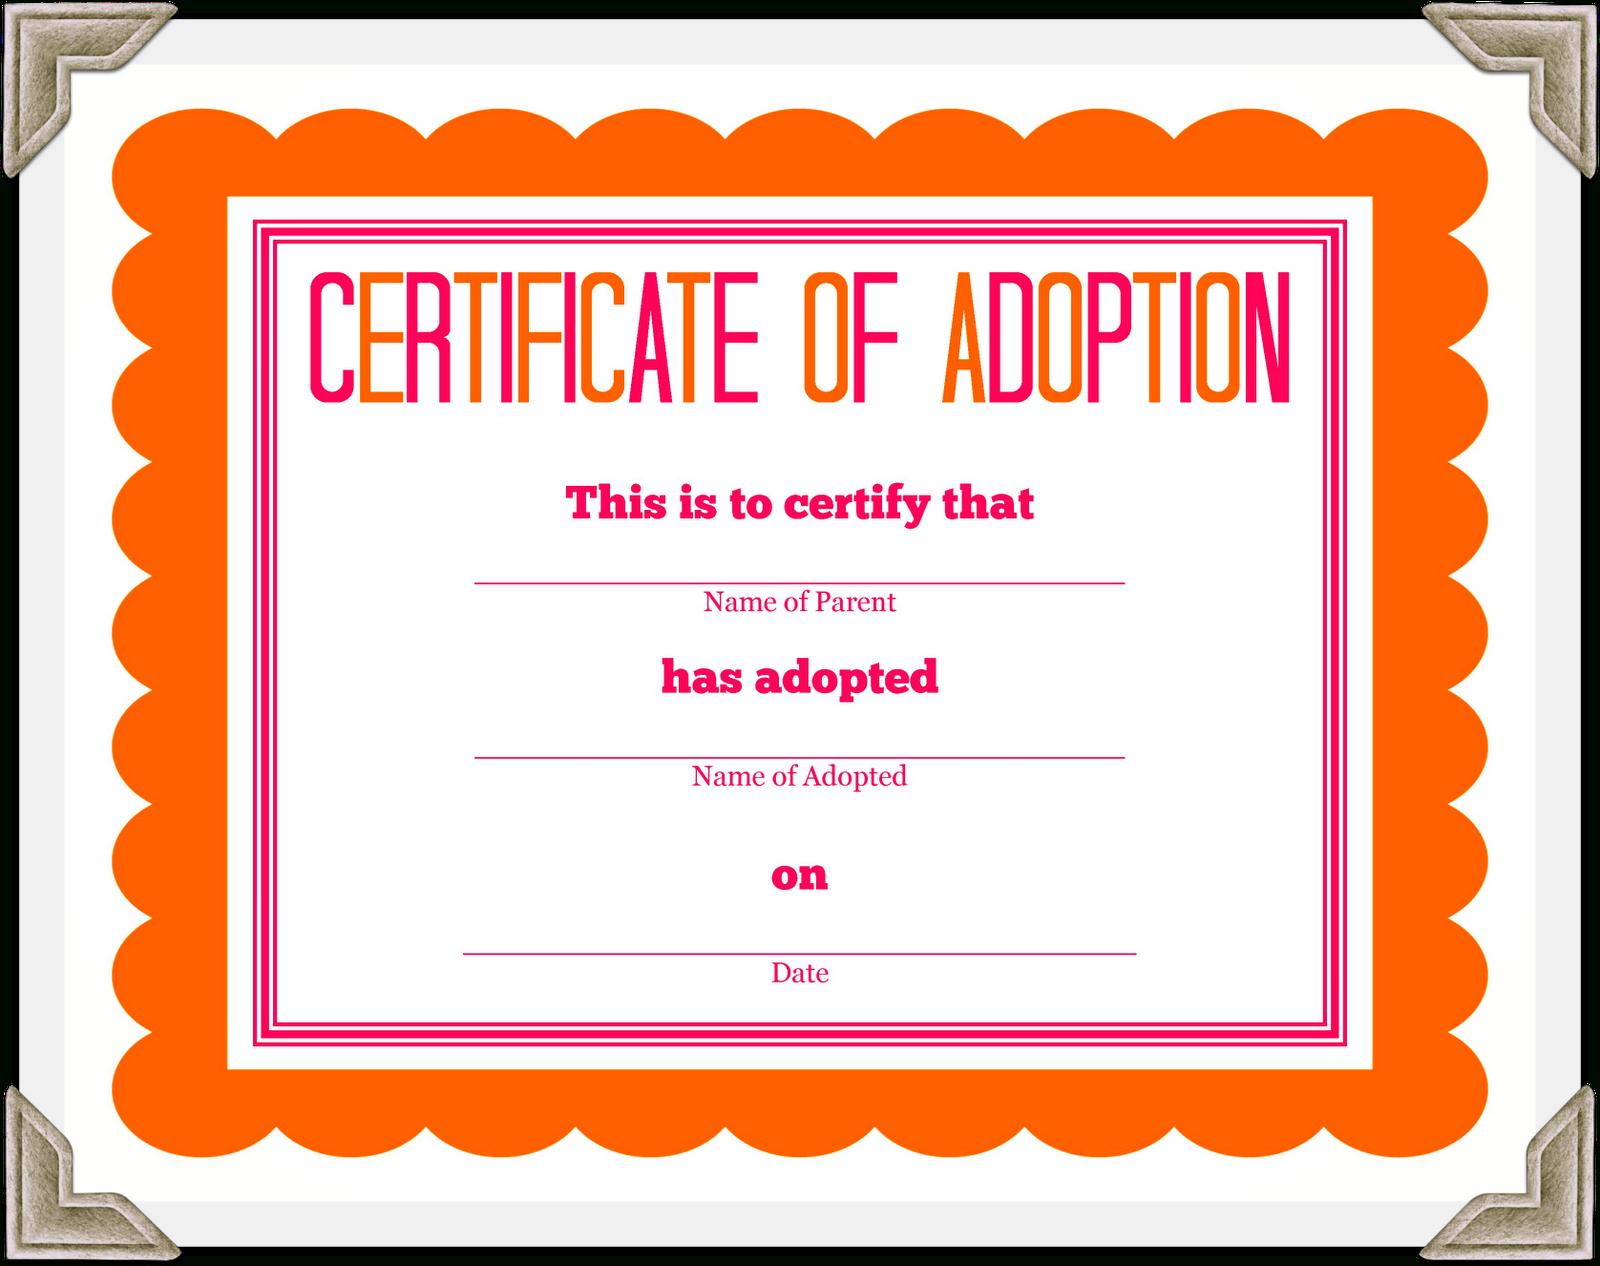 Stuffed Animal Adoption Certificate - Free Printable Stuffed Animal Adoption Certificate